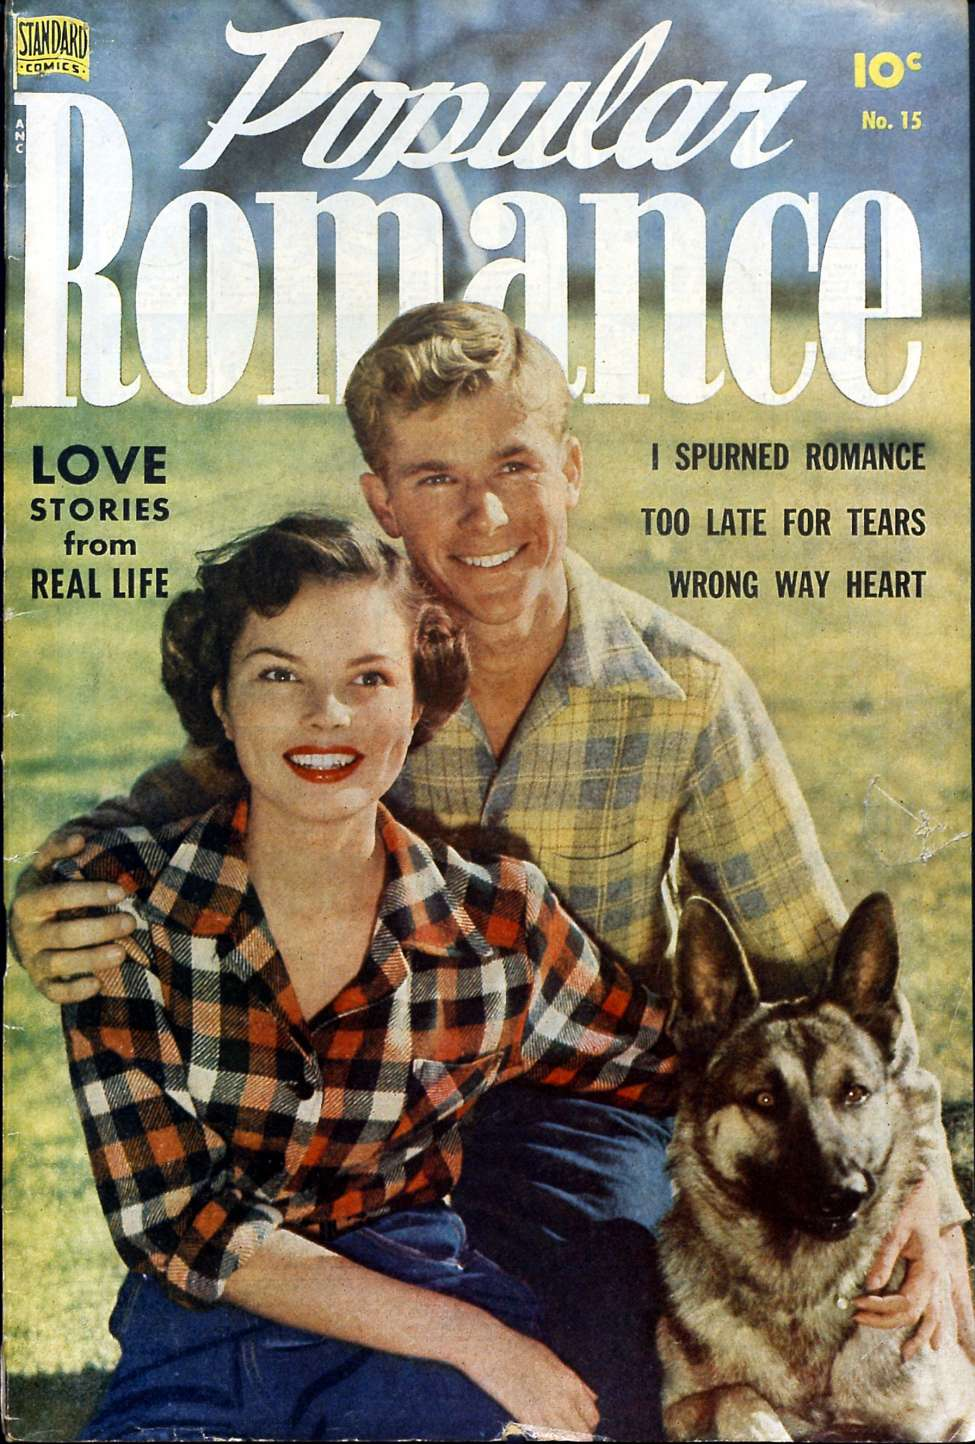 Comic Book Cover For Popular Romance #15